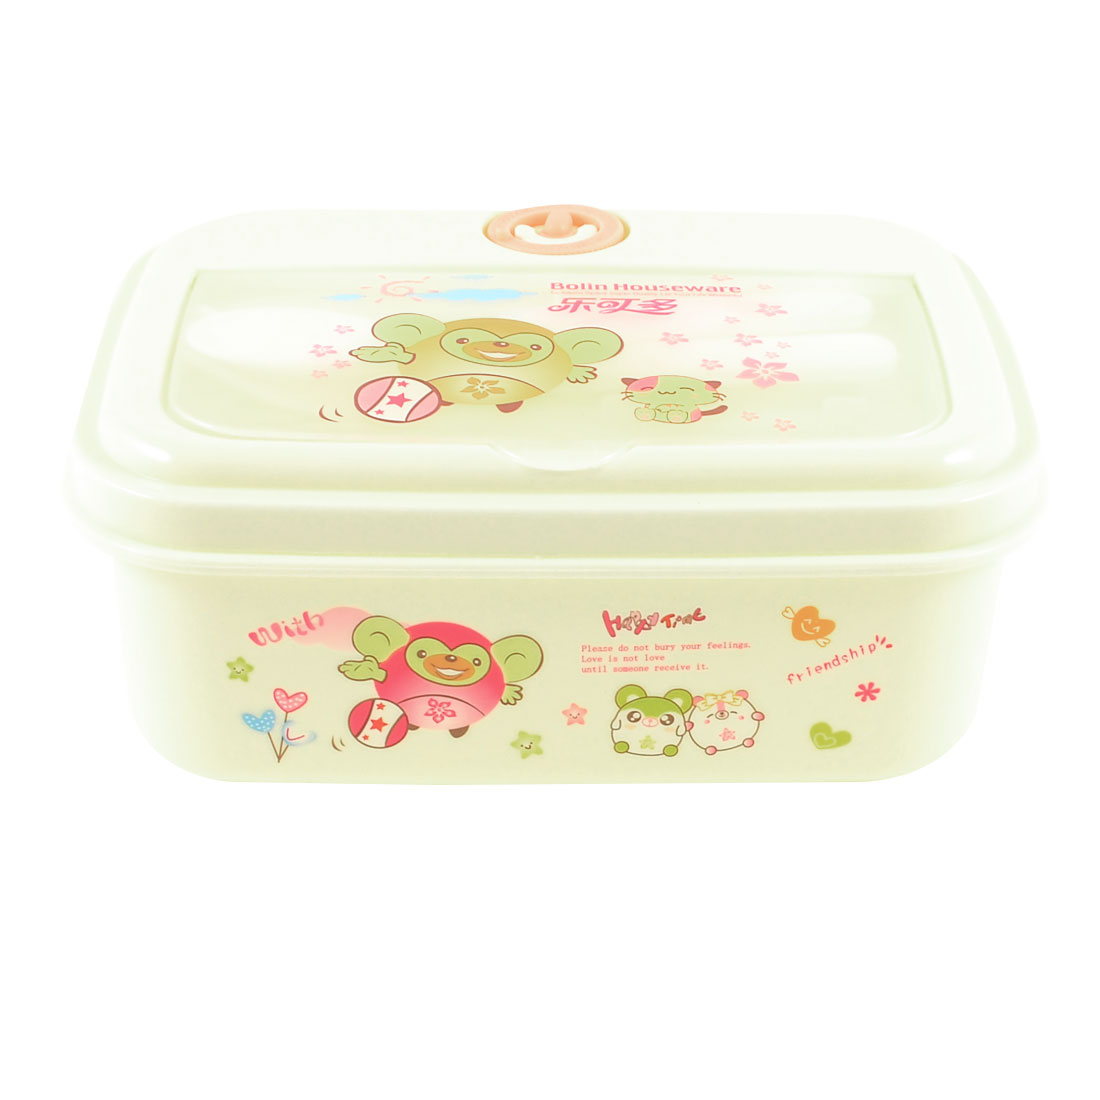 Camping Travel Cartoon Animals Printed Plastic Spoon Fork Off White Lunch Box